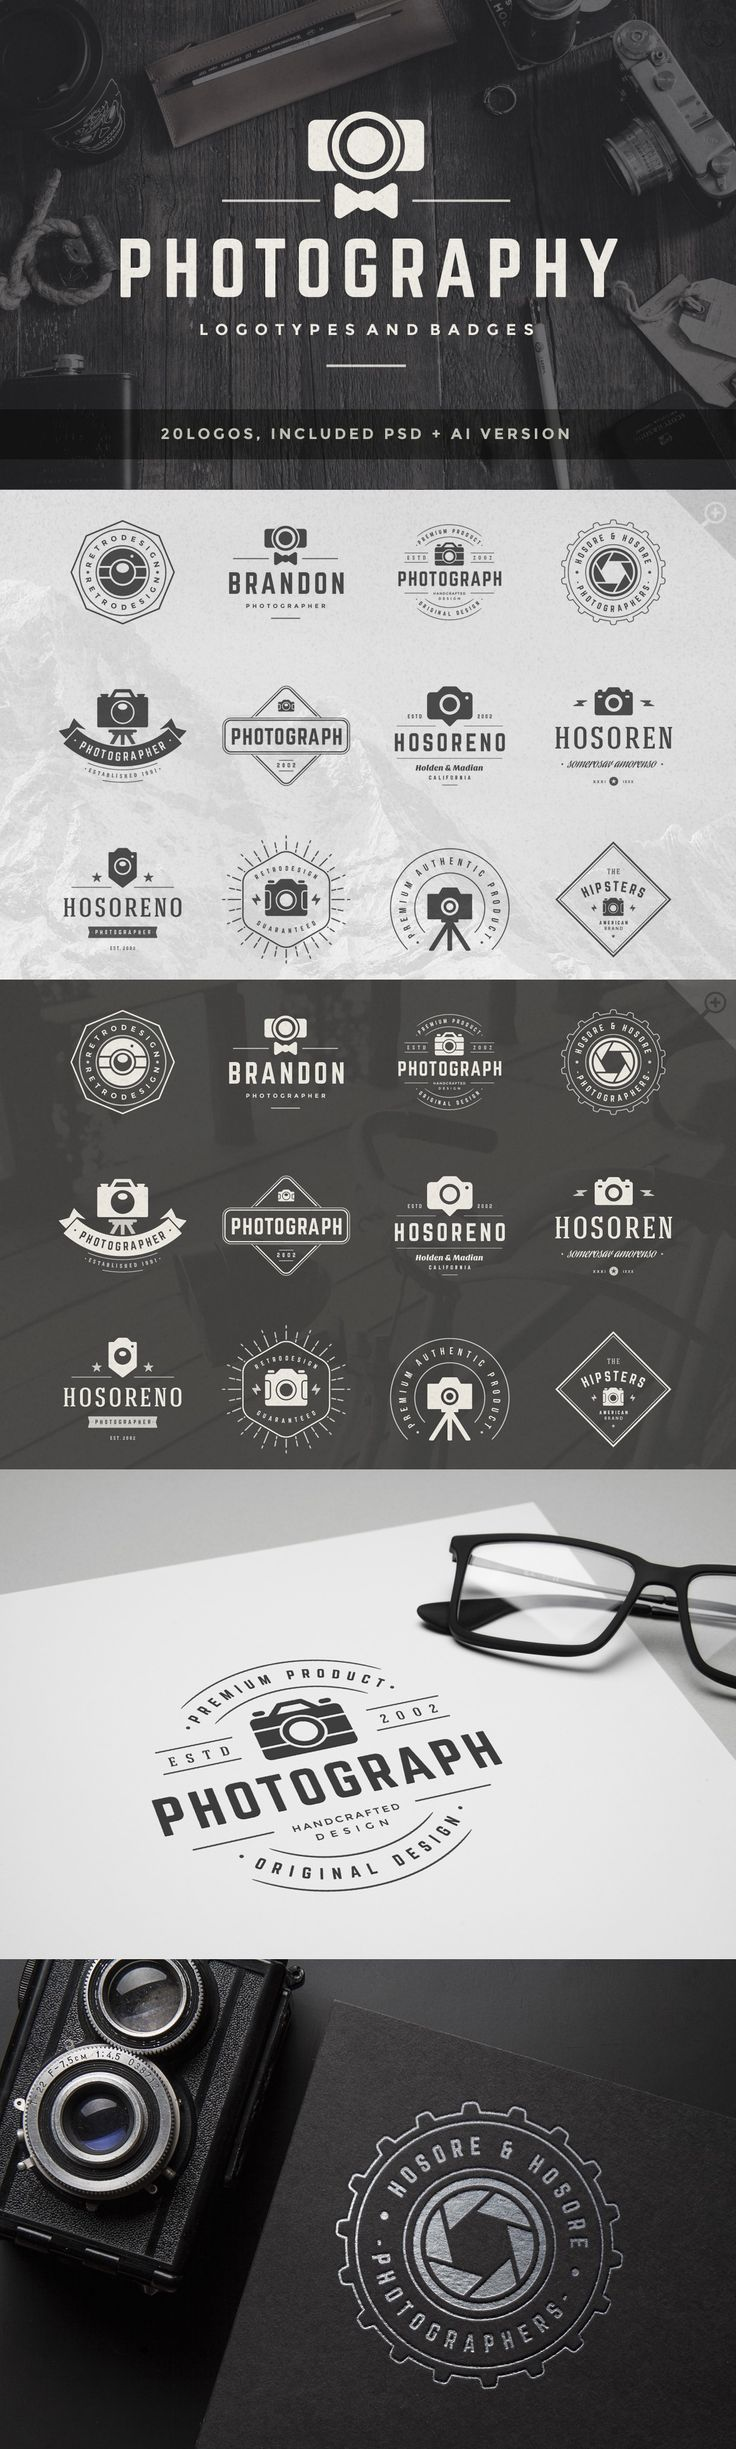 20 Photography Logos and Badges Templates PSD #design Download: https://creativemarket.com/VasyaKo/362199?u=ksioks